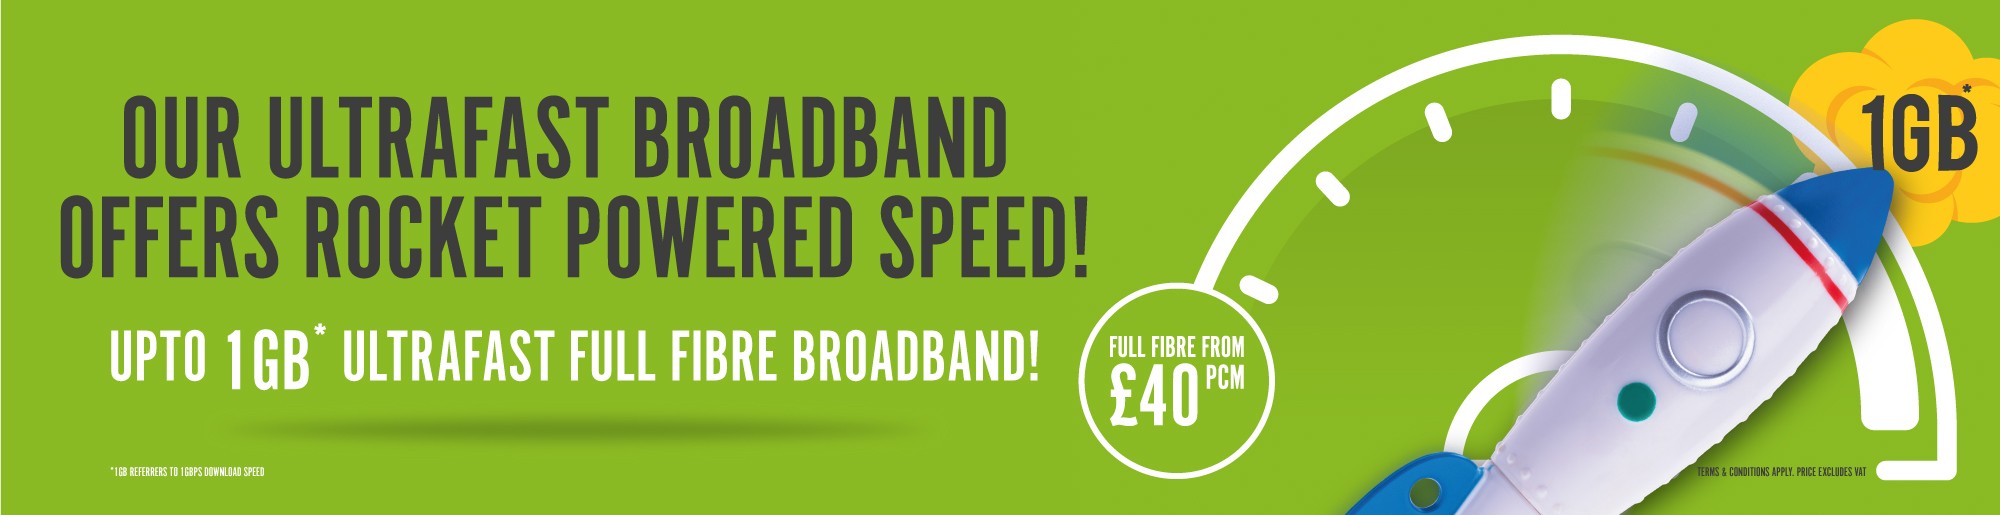 Full Fibre Broadband - Up to 1GBPS Download Speed